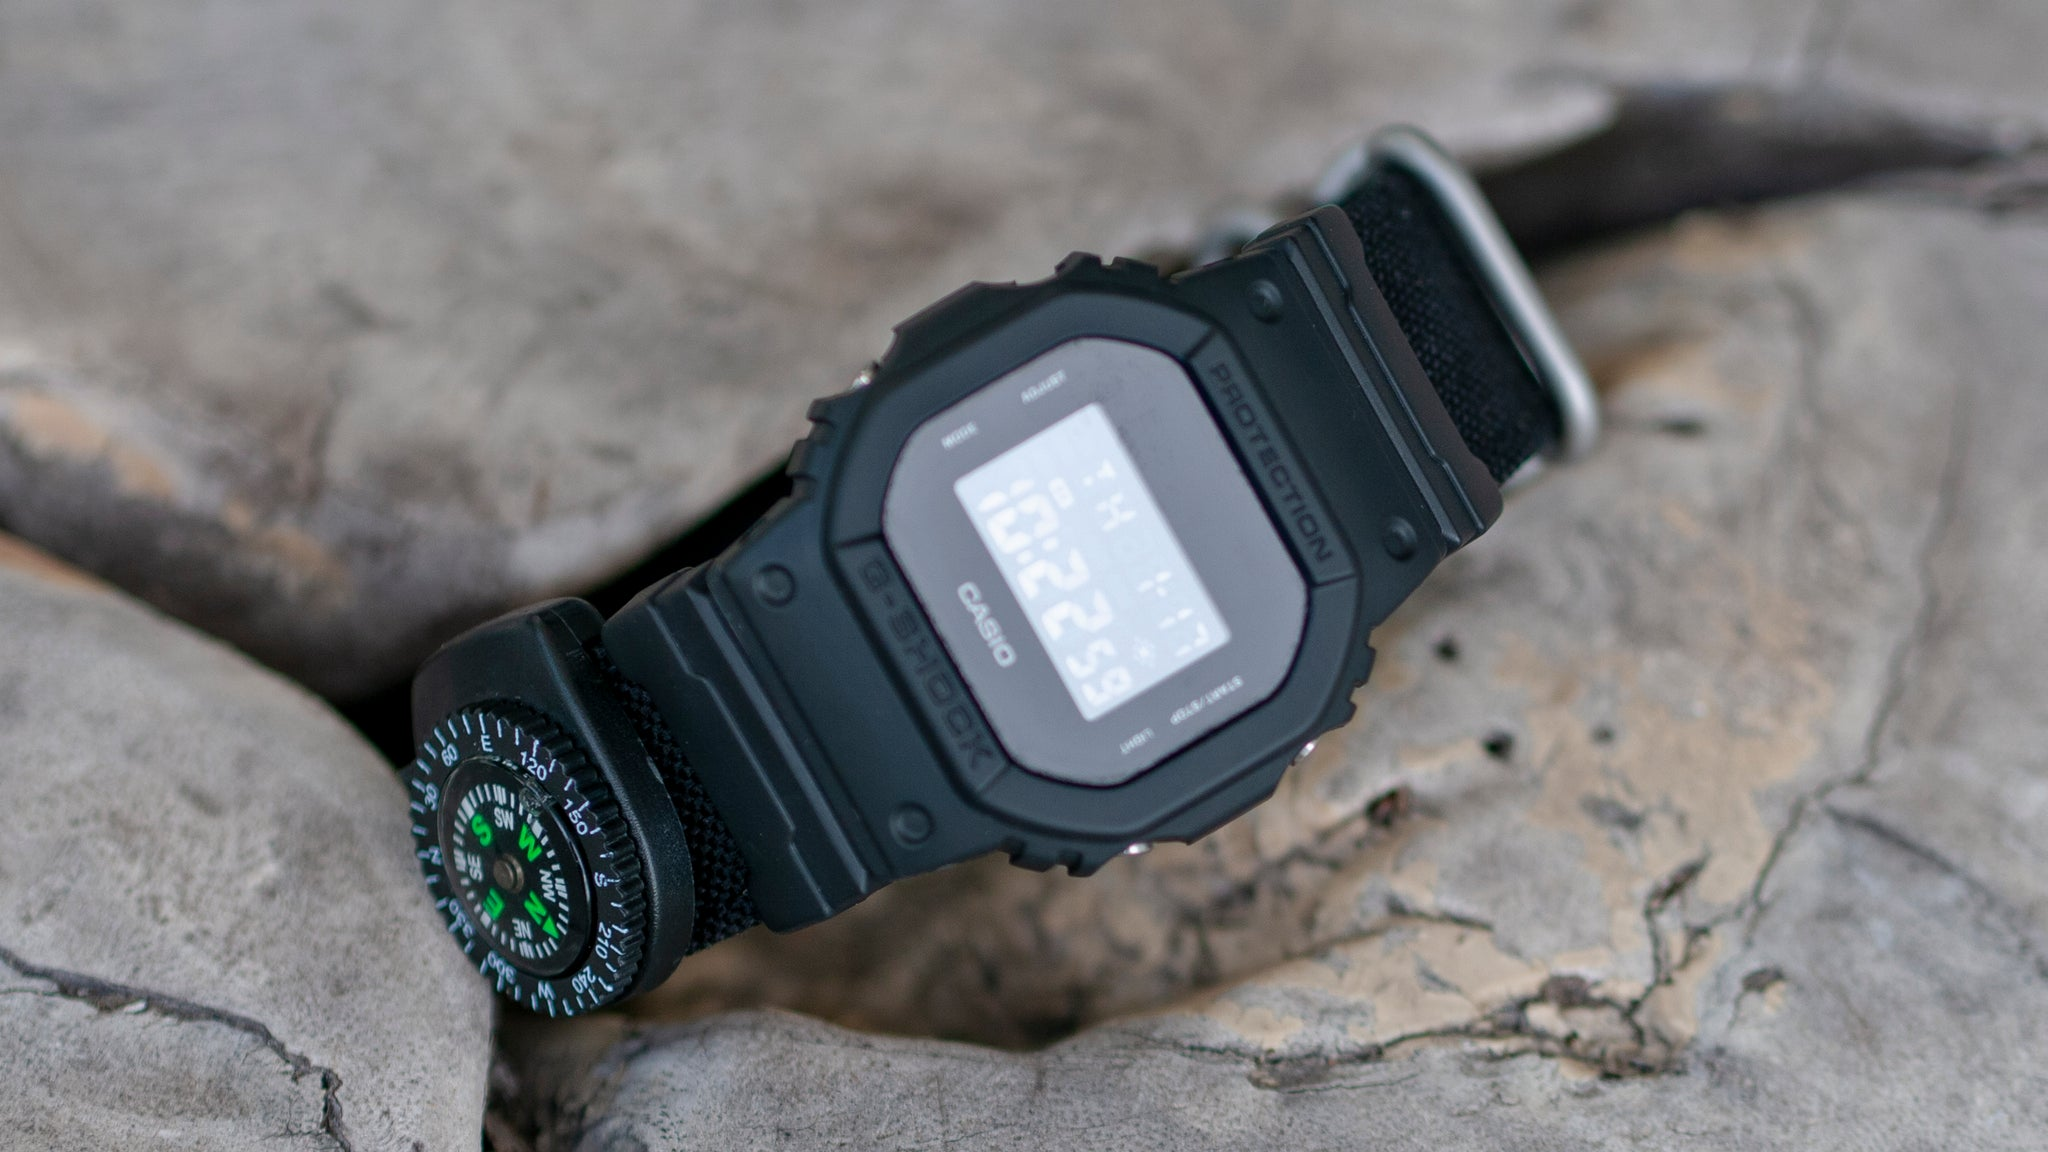 gshock dw5600 avec sangle vario cordura